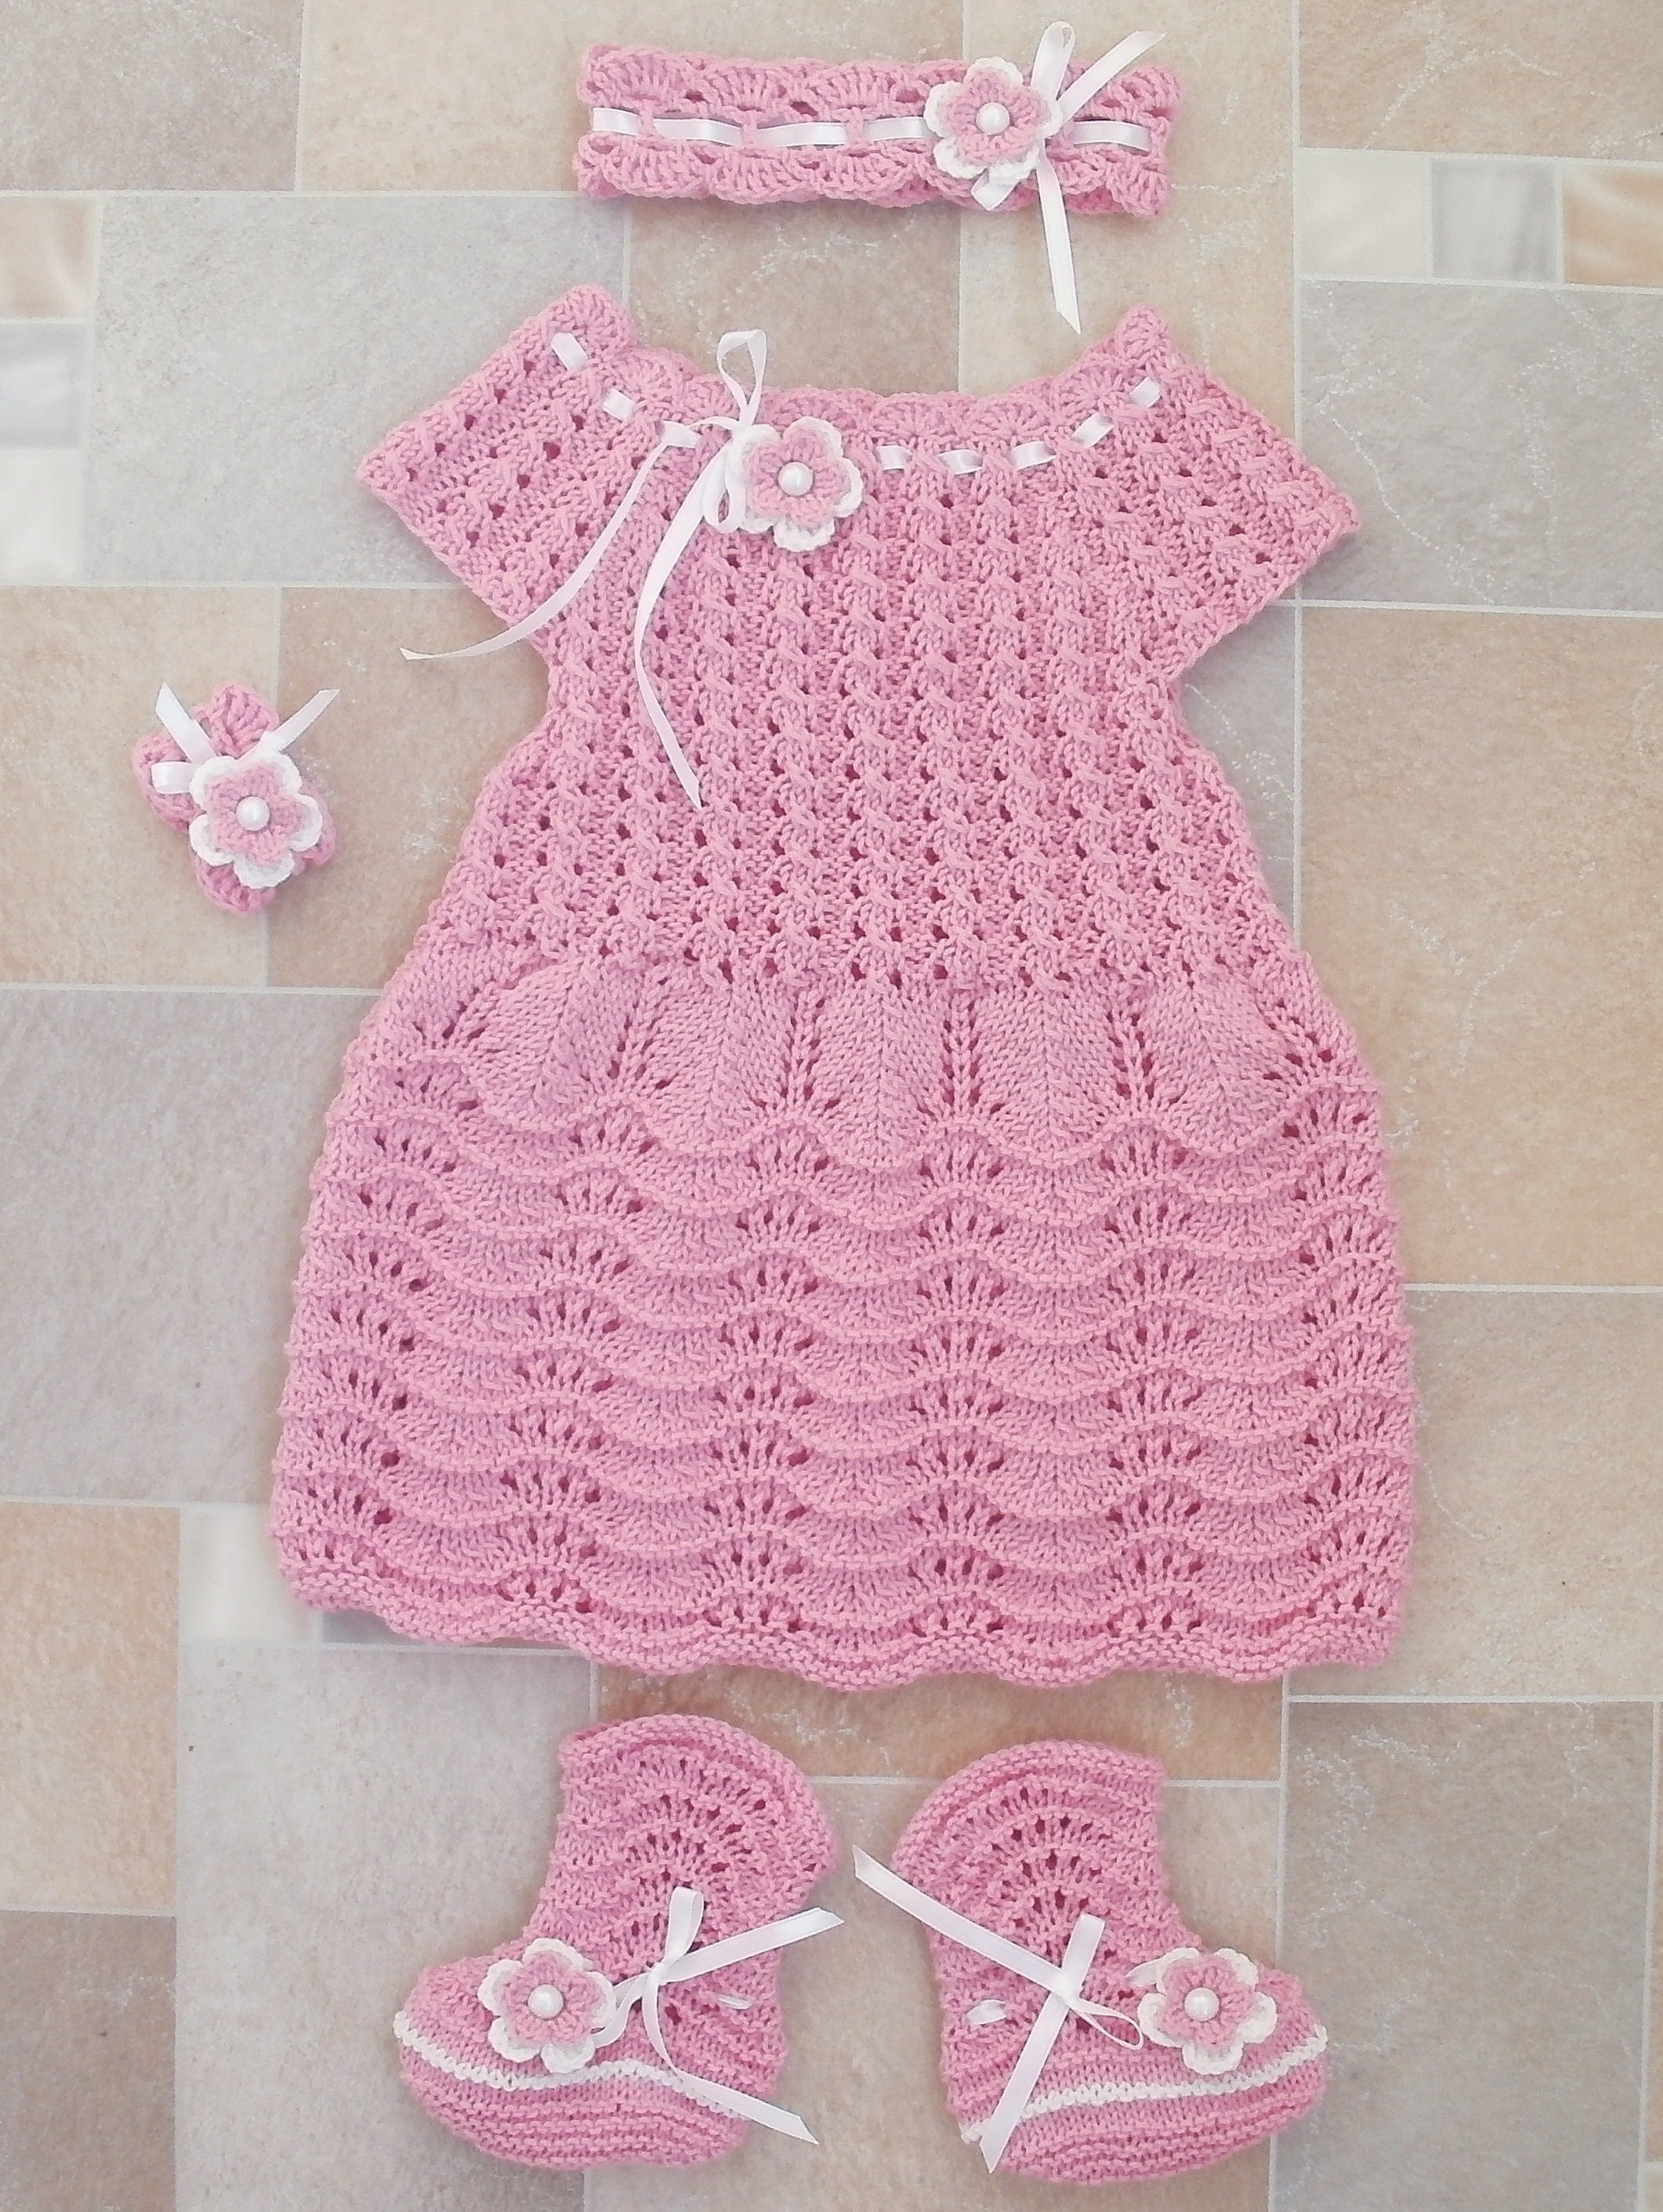 pink dress baby girl ing home outfit knitted dress socks